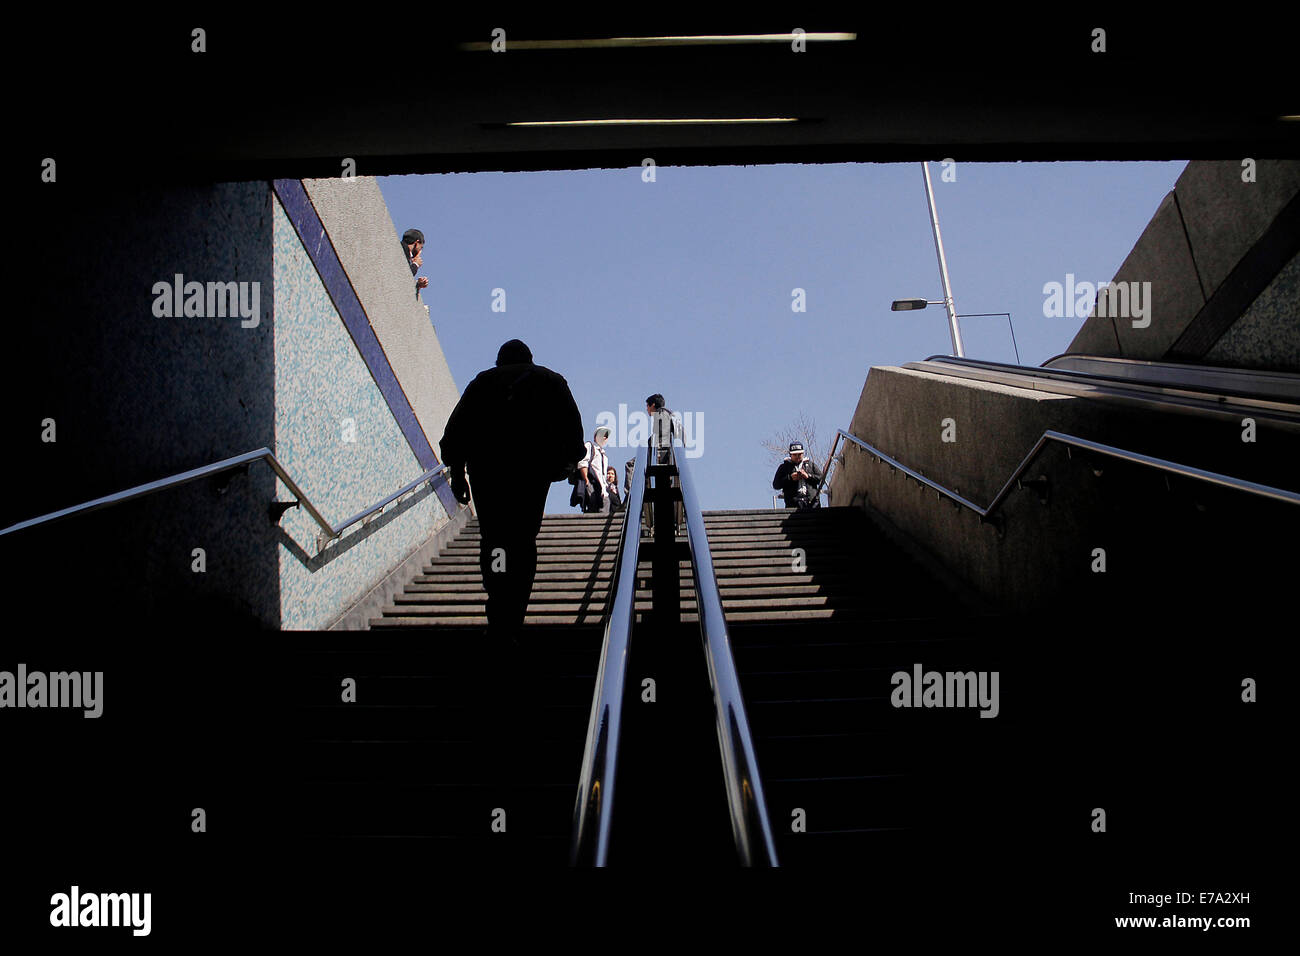 Santiago. 10th Sep, 2014. A man gets out of the Chile Metro Station that was evacuated because of a suspicious object, - Stock Image